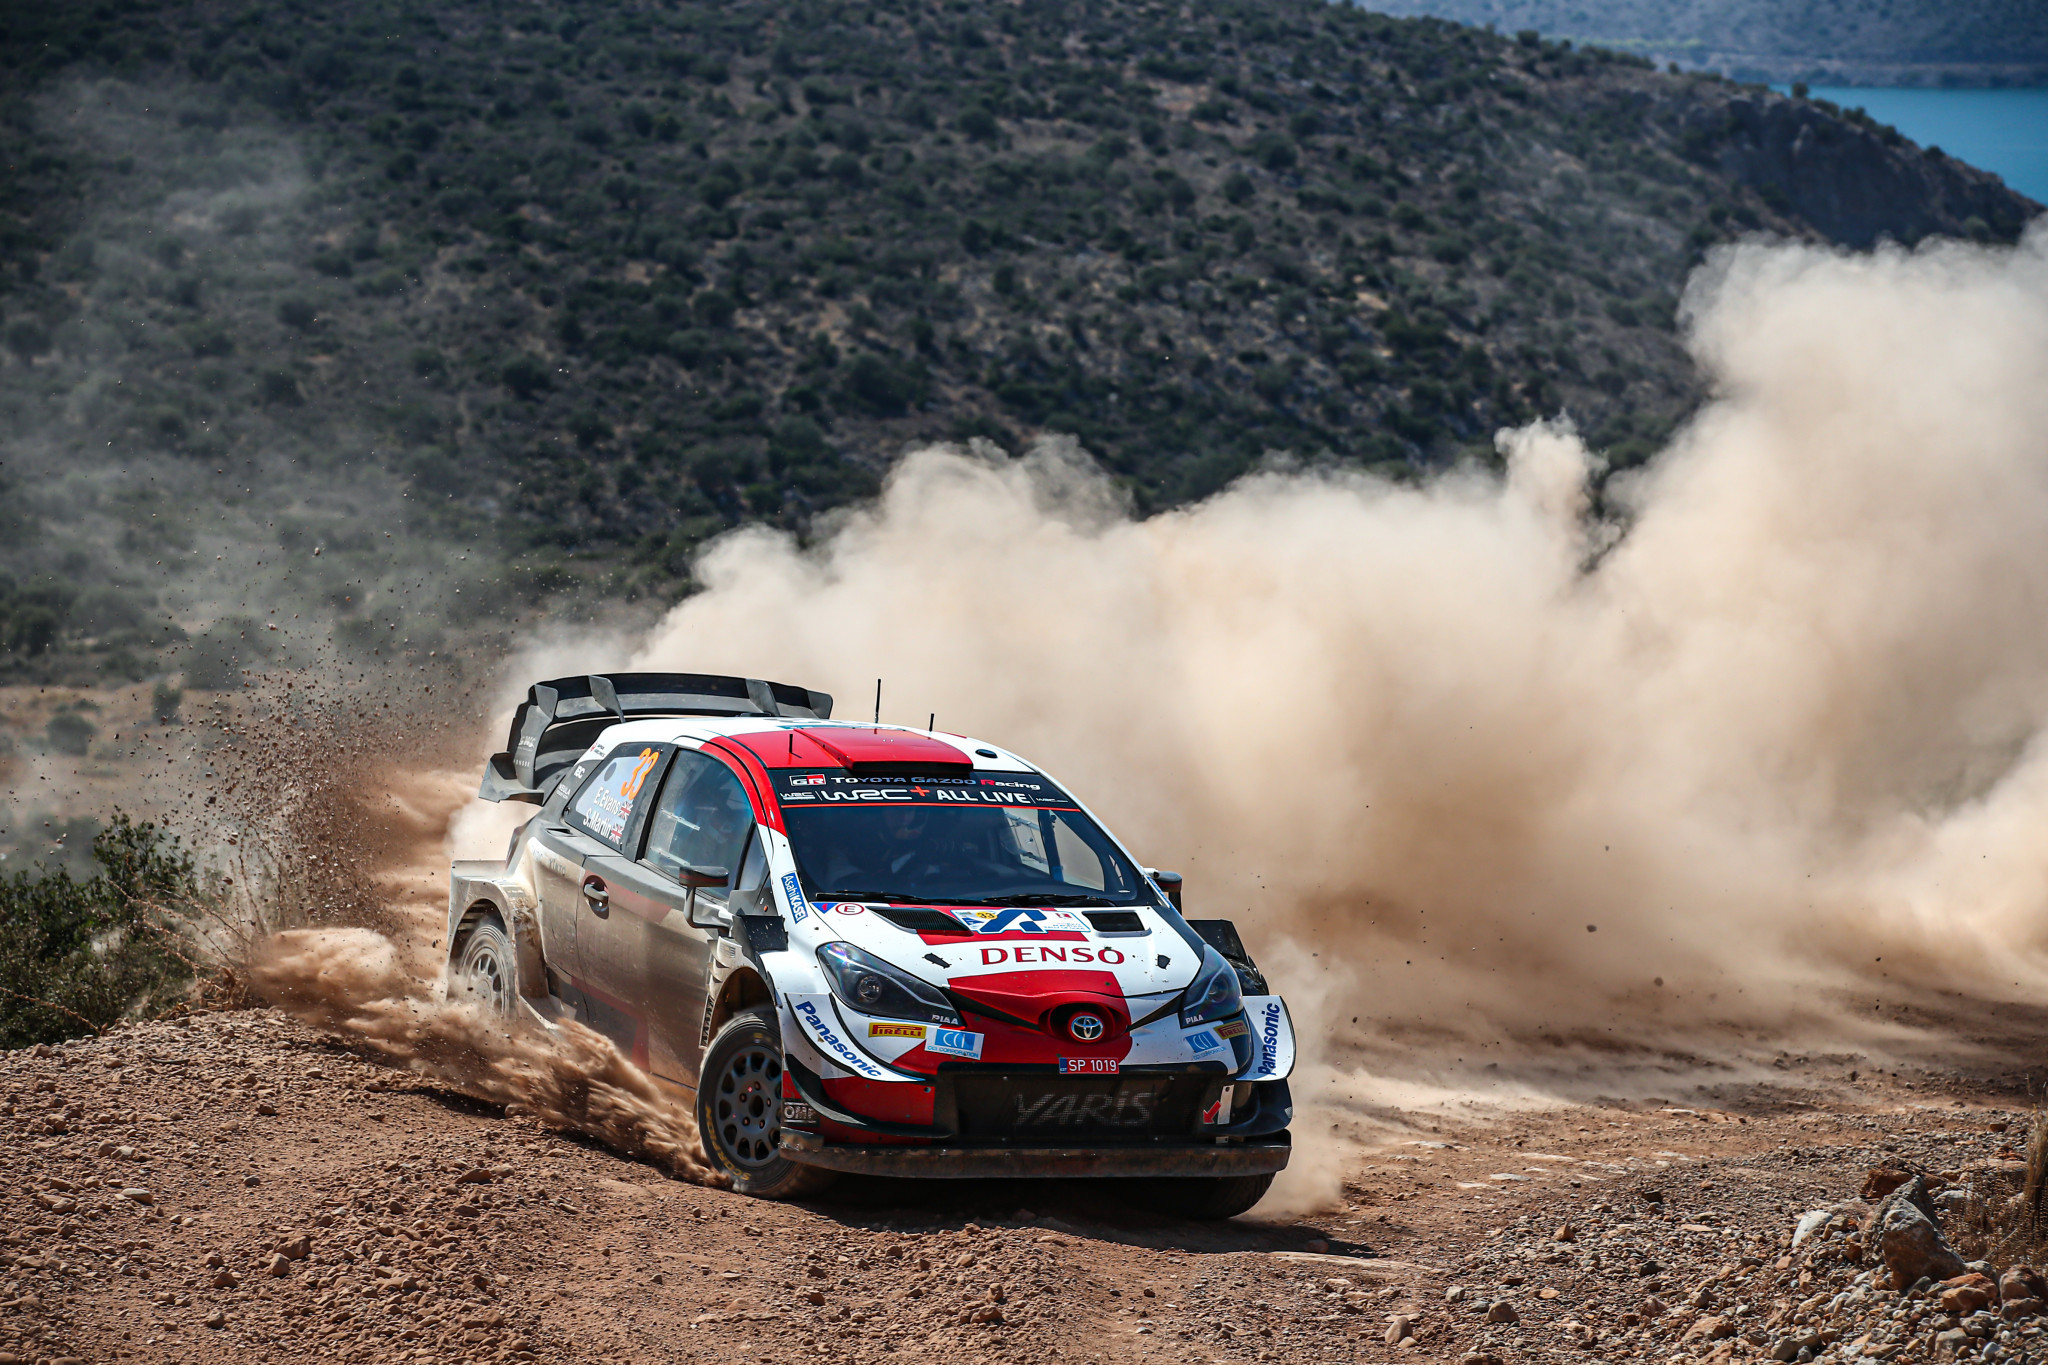 World Rally Championship's final round in Japan to be moved due to COVID-19